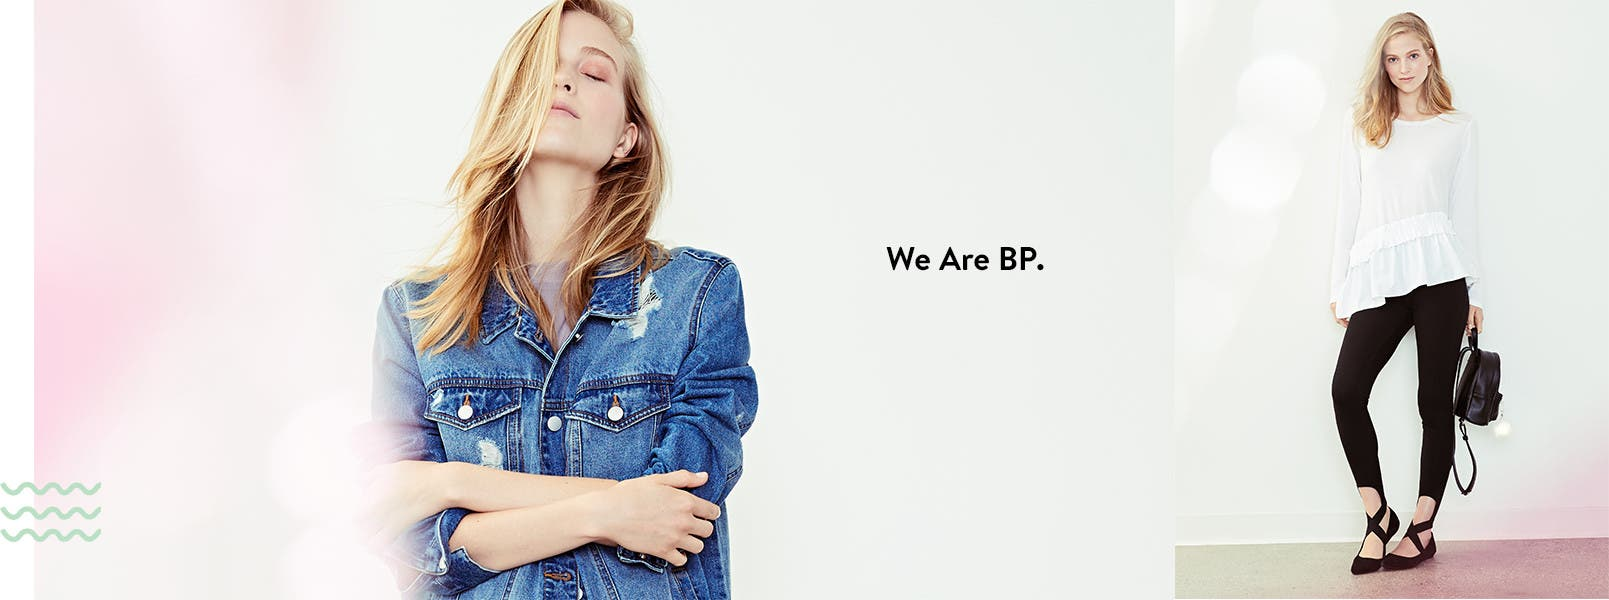 We are BP.